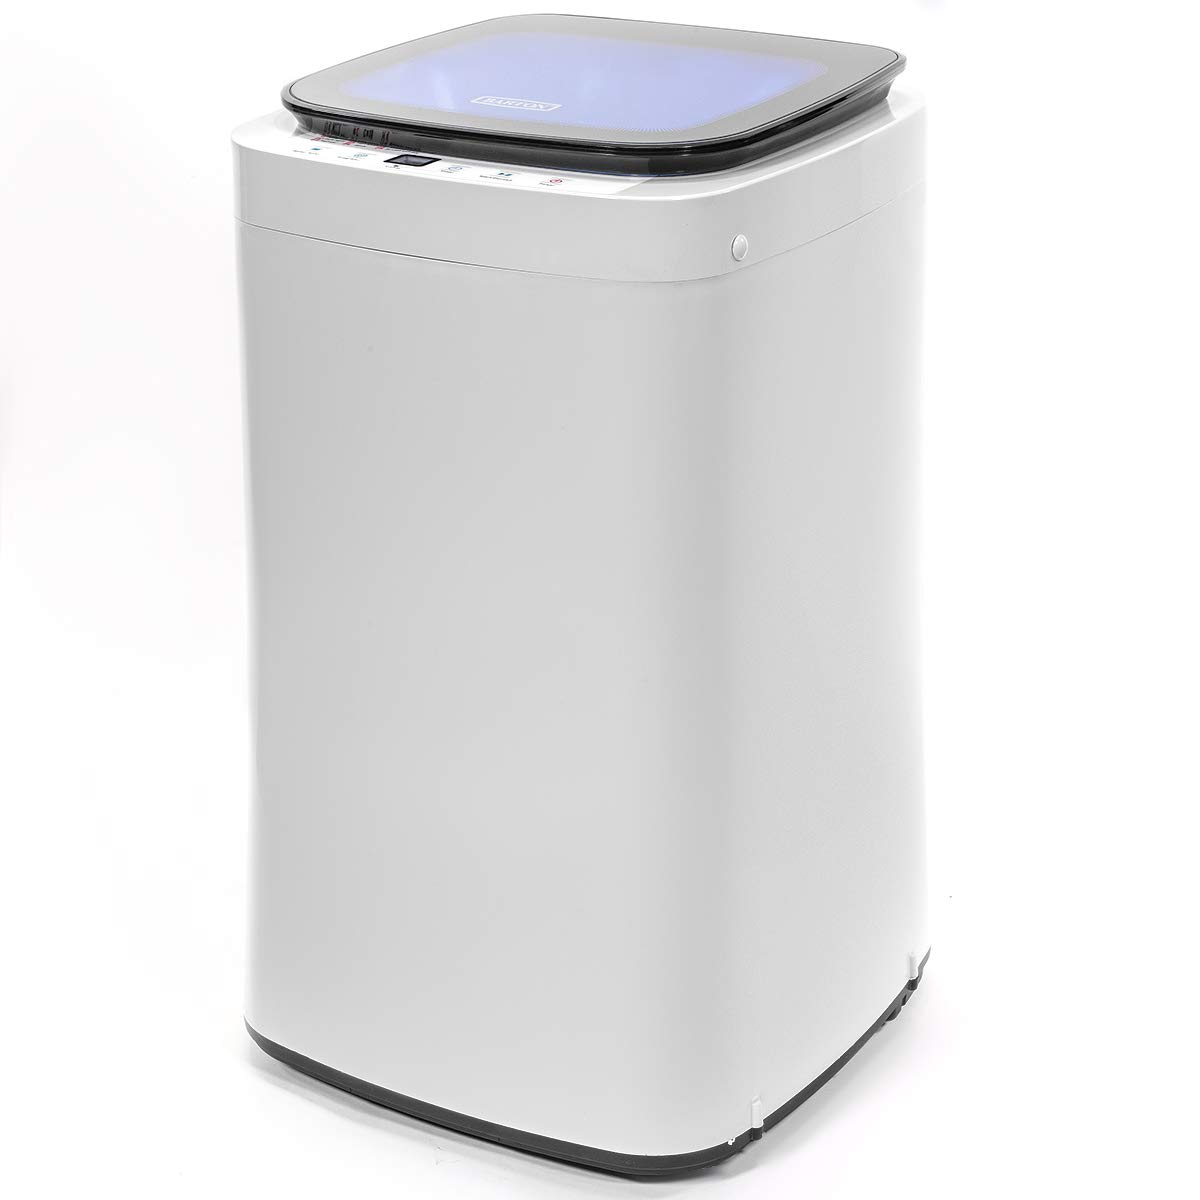 Barton Full-Automatic Washing Machine Compact 7.7lbs Laundry Washer Spin with Drain Pump 9 Programs Selections w/LED Display by Barton